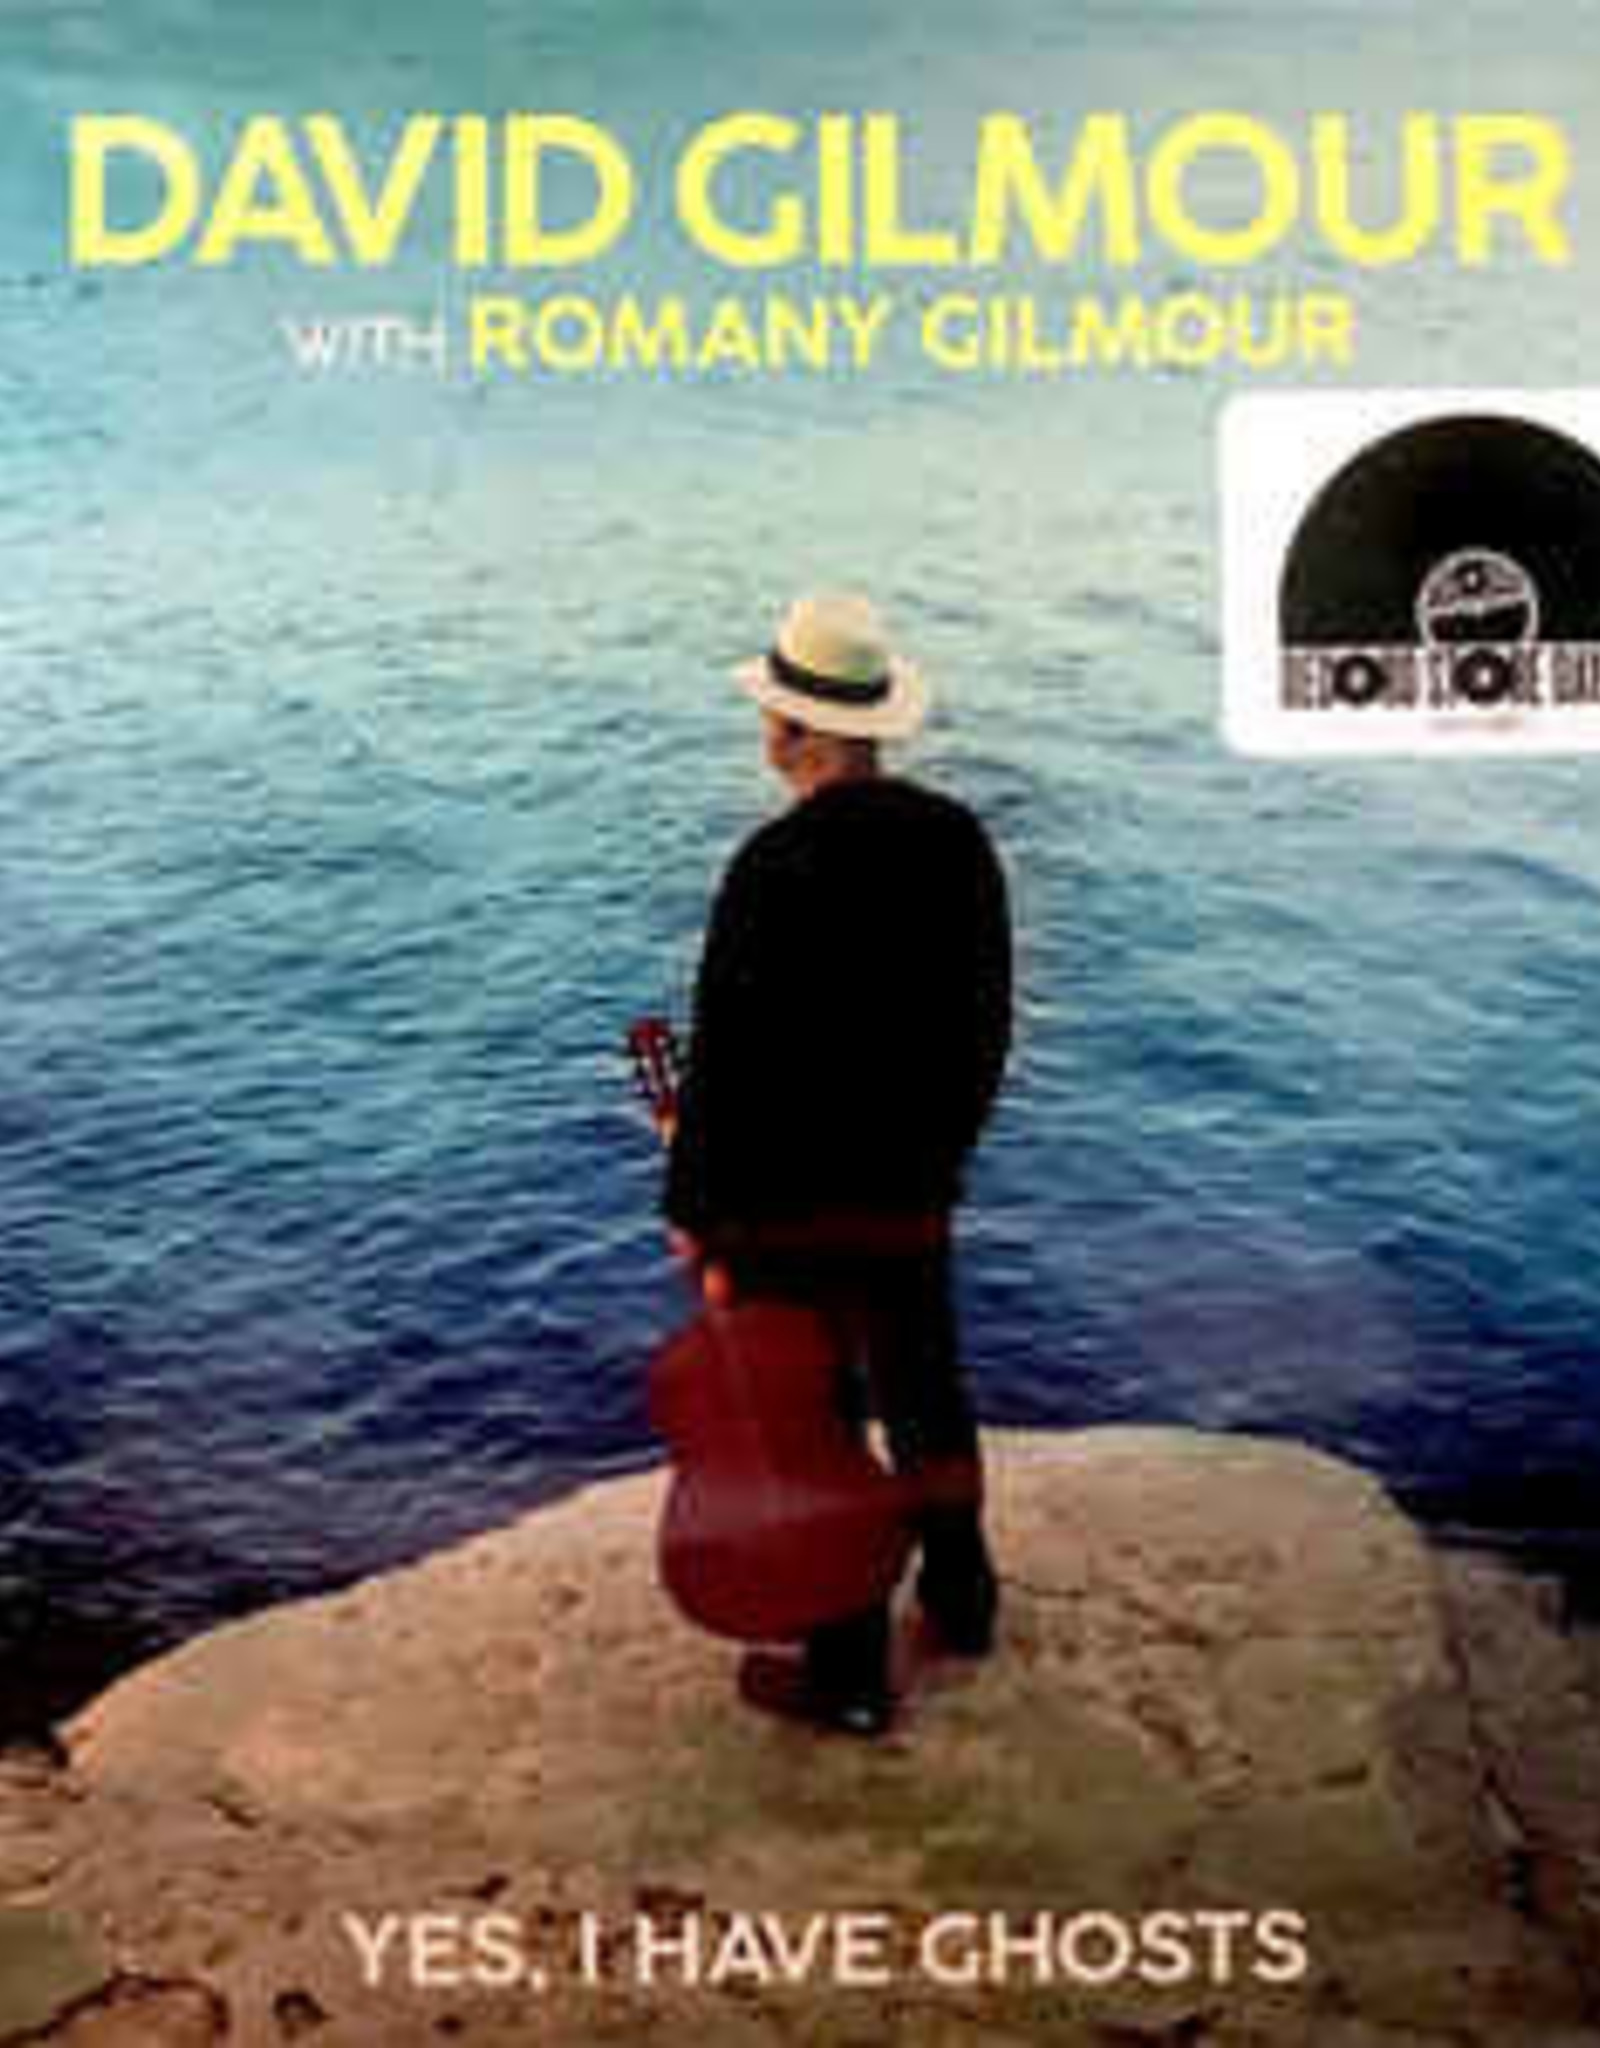 David Gilmour - Yes, I Have Ghosts (RSD 2020 BF)